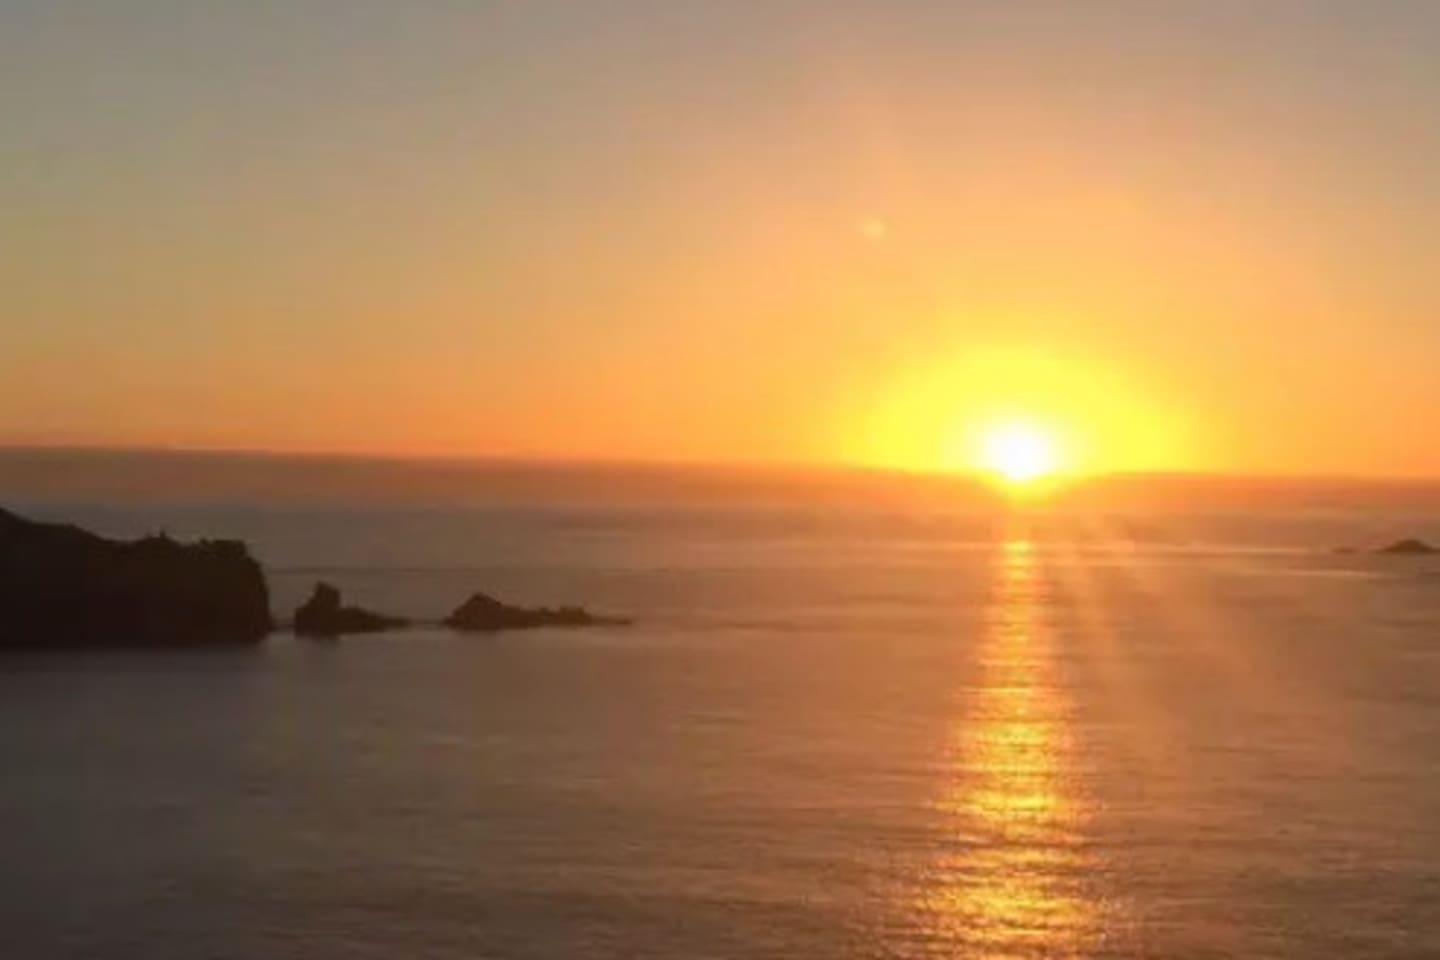 One of our regular Sunsets at Lands End.  20 mins walk from your accommodation